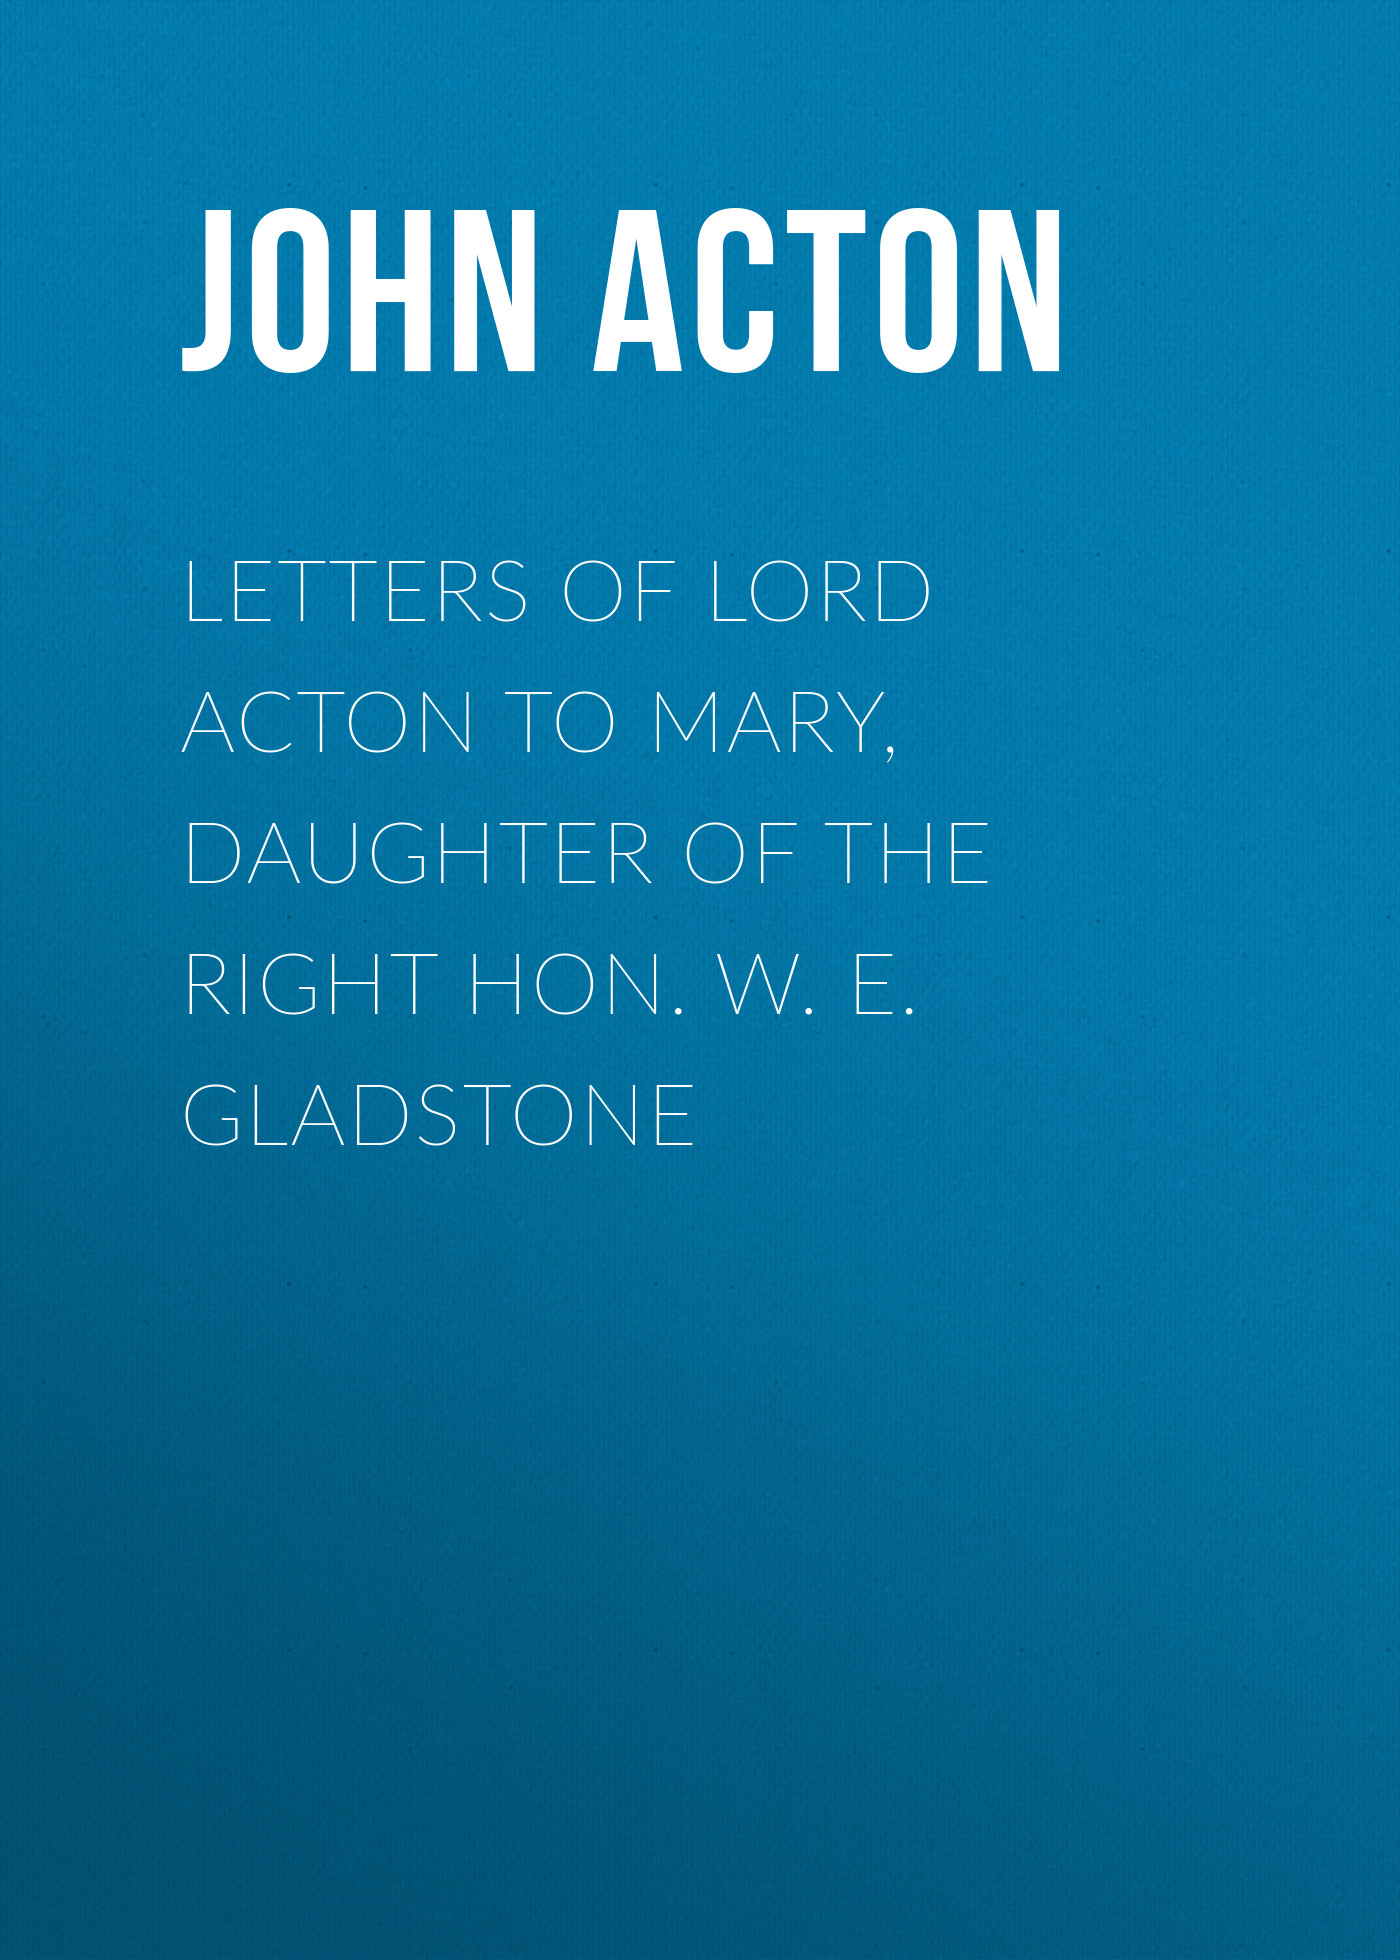 Acton John Emerich Edward Dalberg Acton, Baron Letters of Lord Acton to Mary, Daughter of the Right Hon. W. E. Gladstone acton